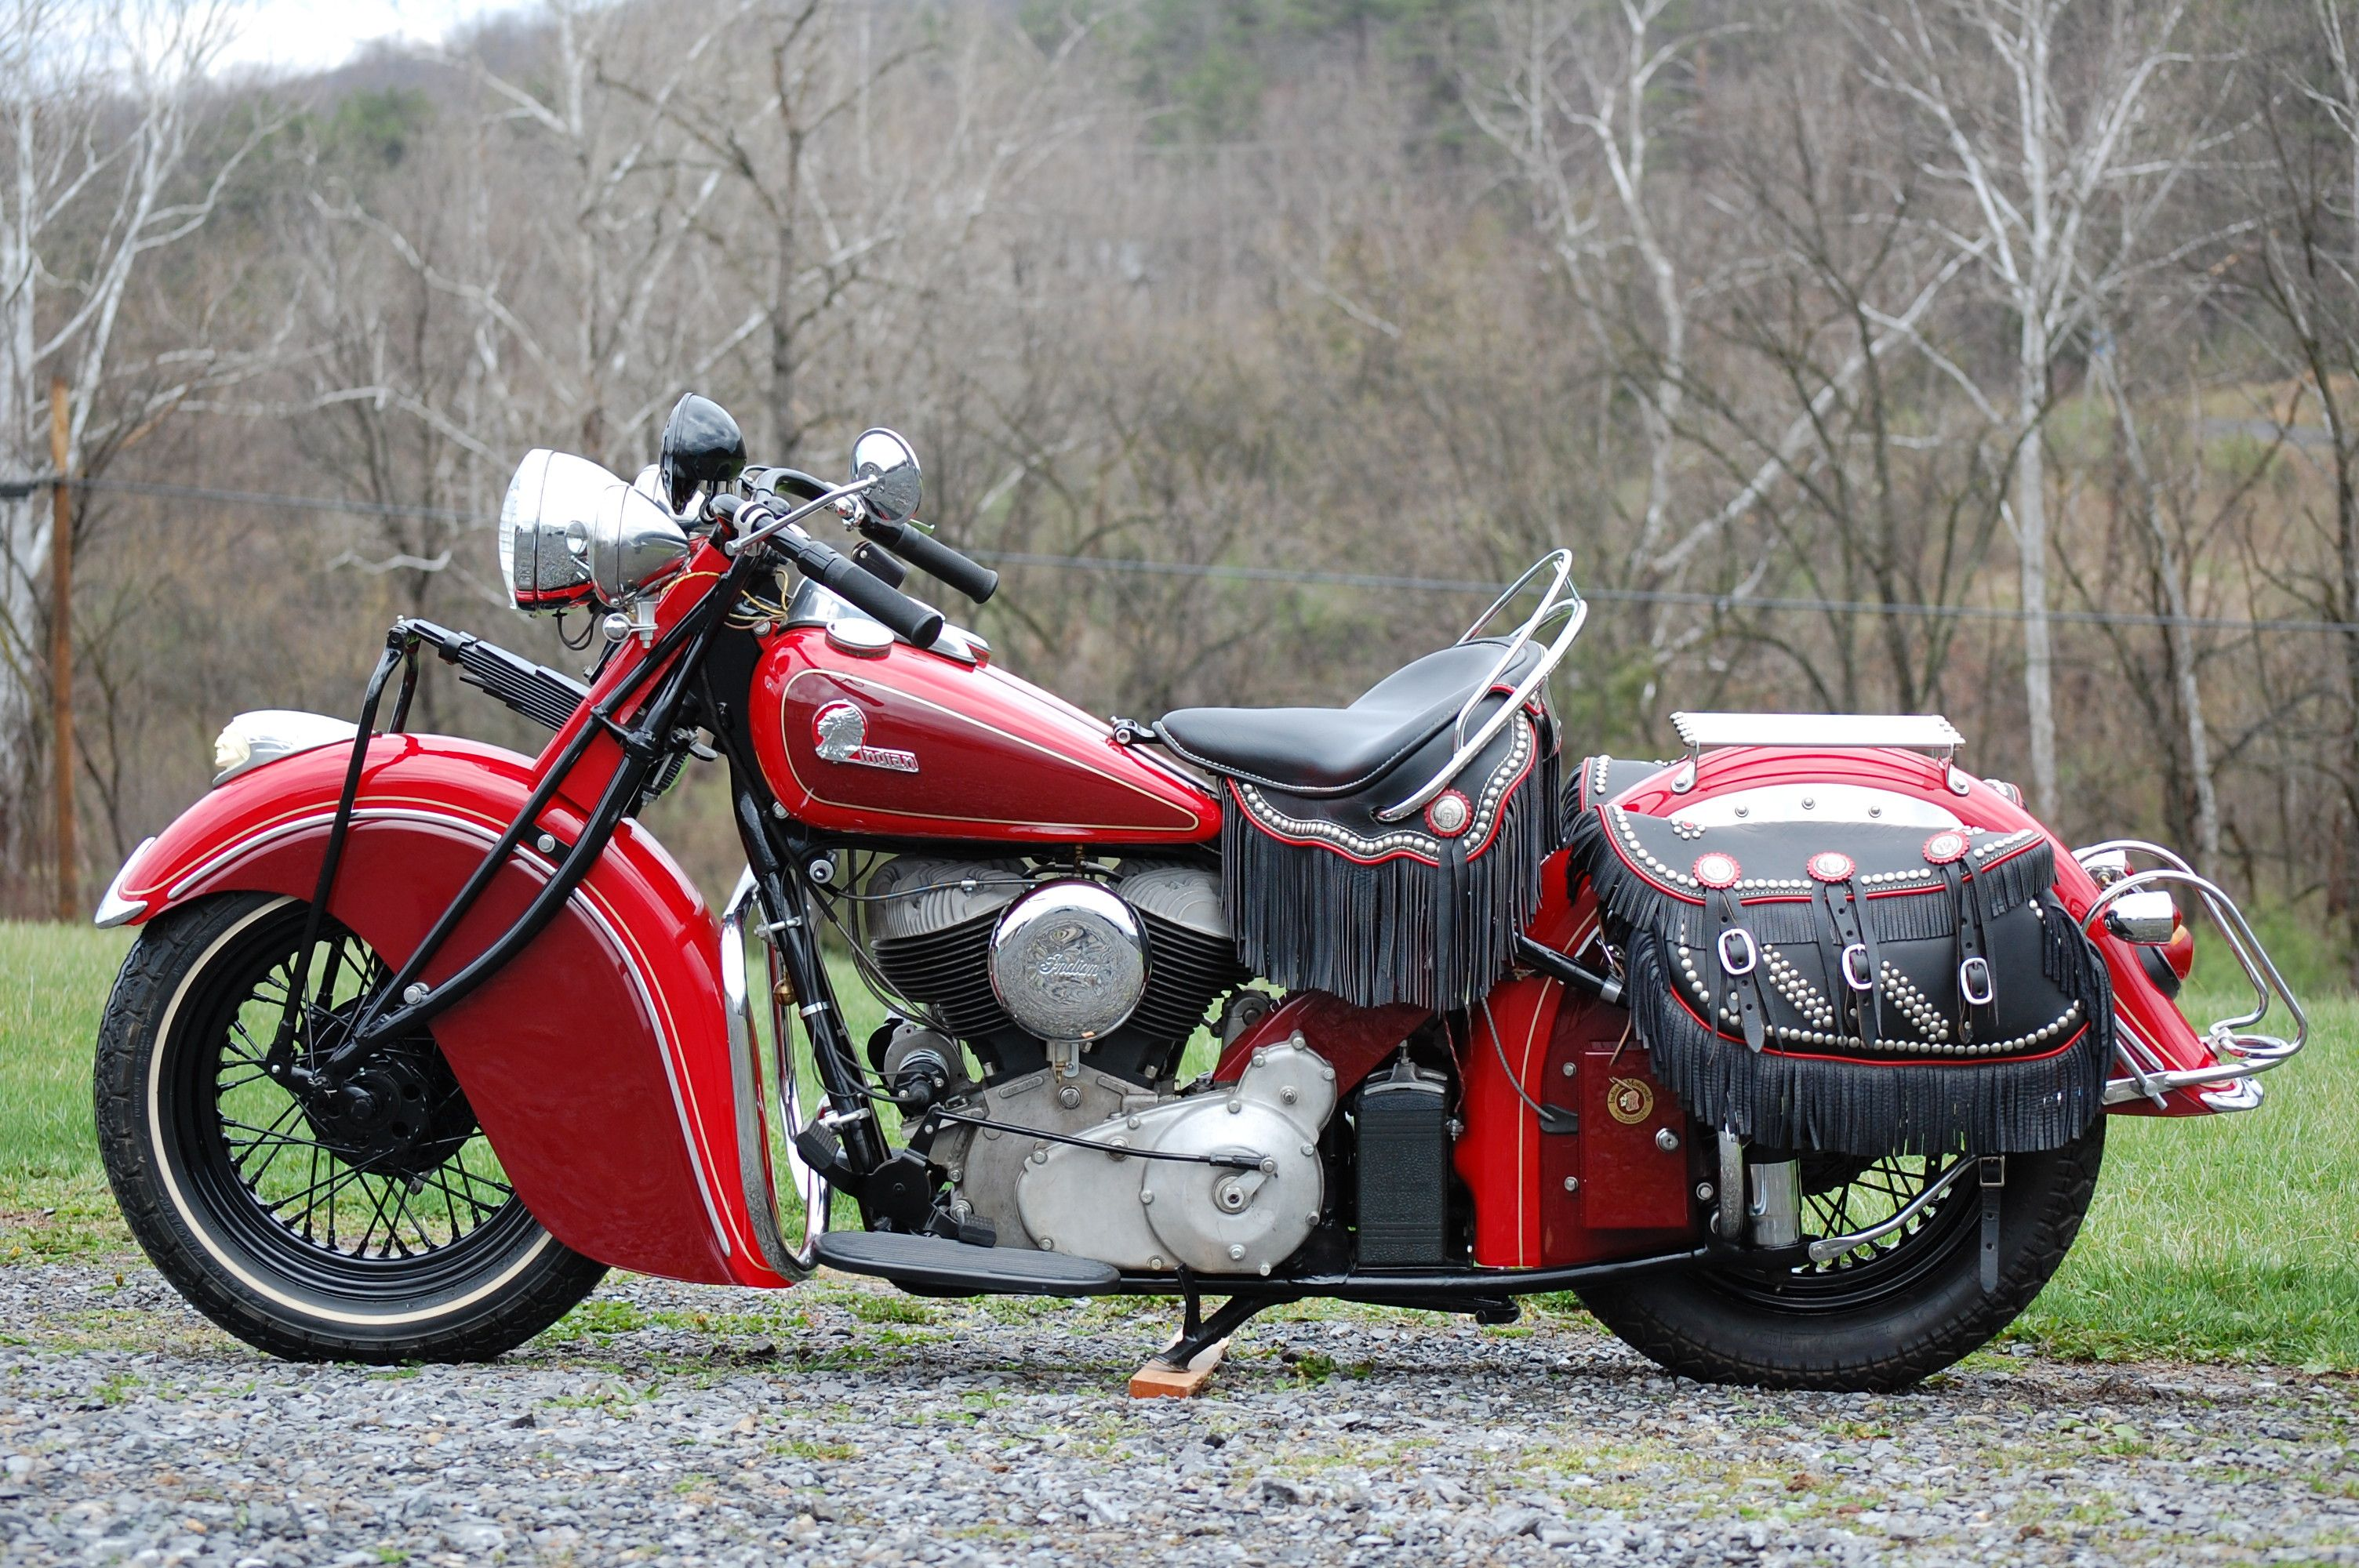 1960 Indian Chief Motorcycle 1945 Indian Chief Bikes Vintage